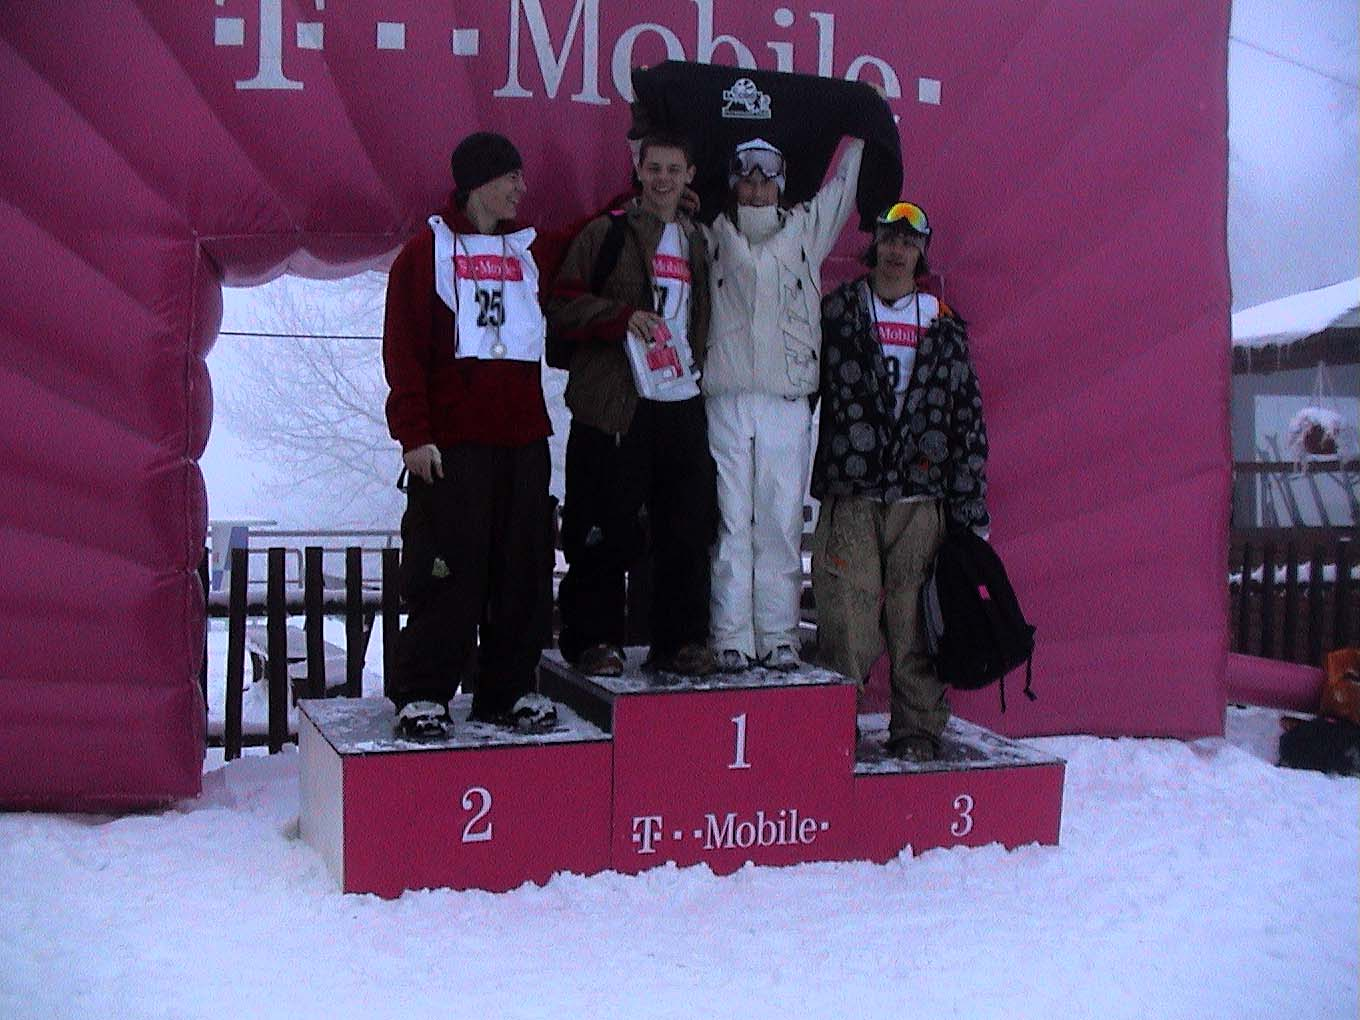 Tina with T-Mobile Snowboard Cup winners on Sljeme